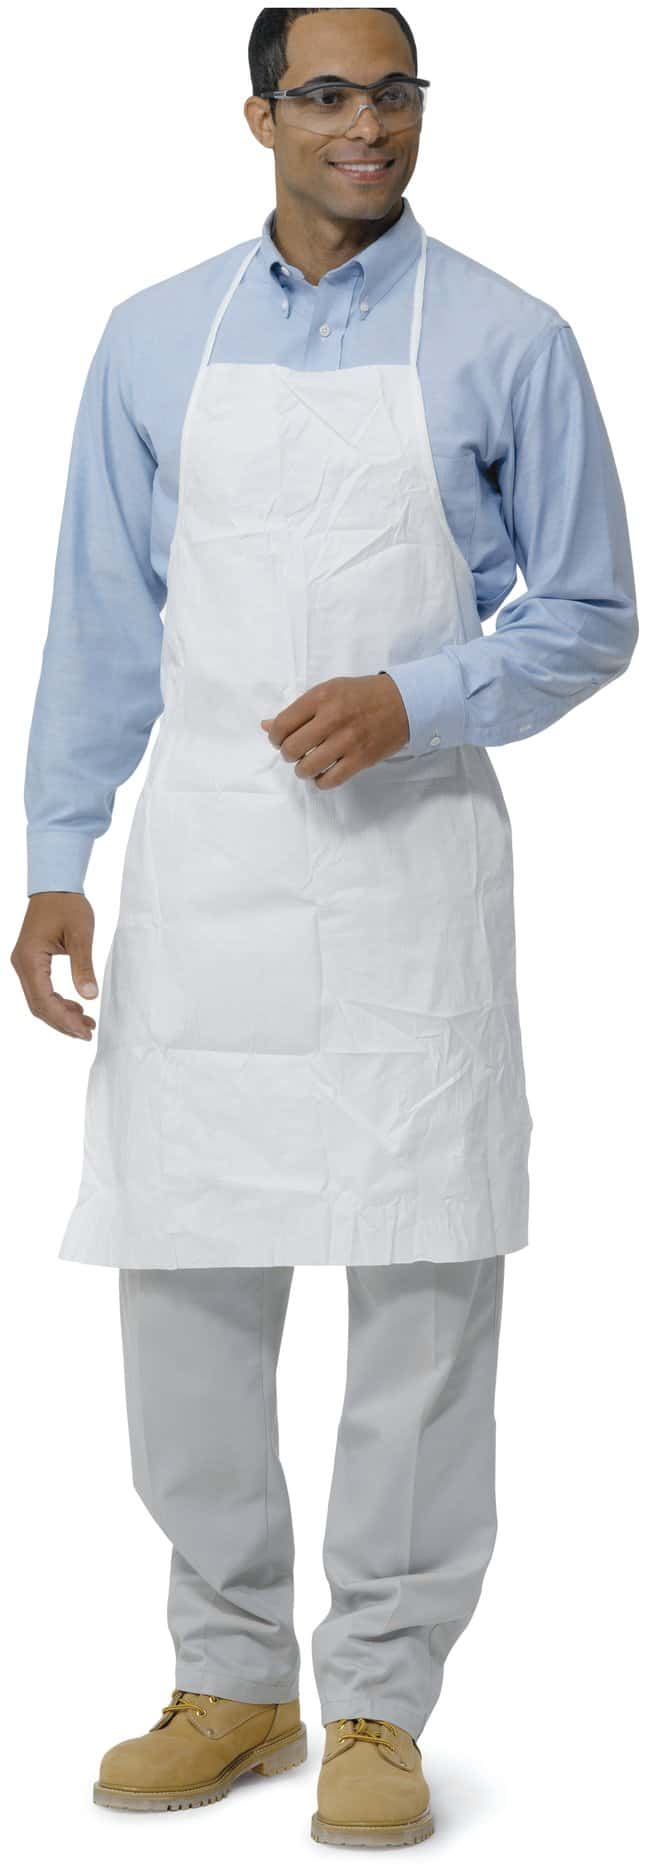 DuPont ProShield NexGen Apron and Sleeves Apron; L x W: 36 x 28 in. (69